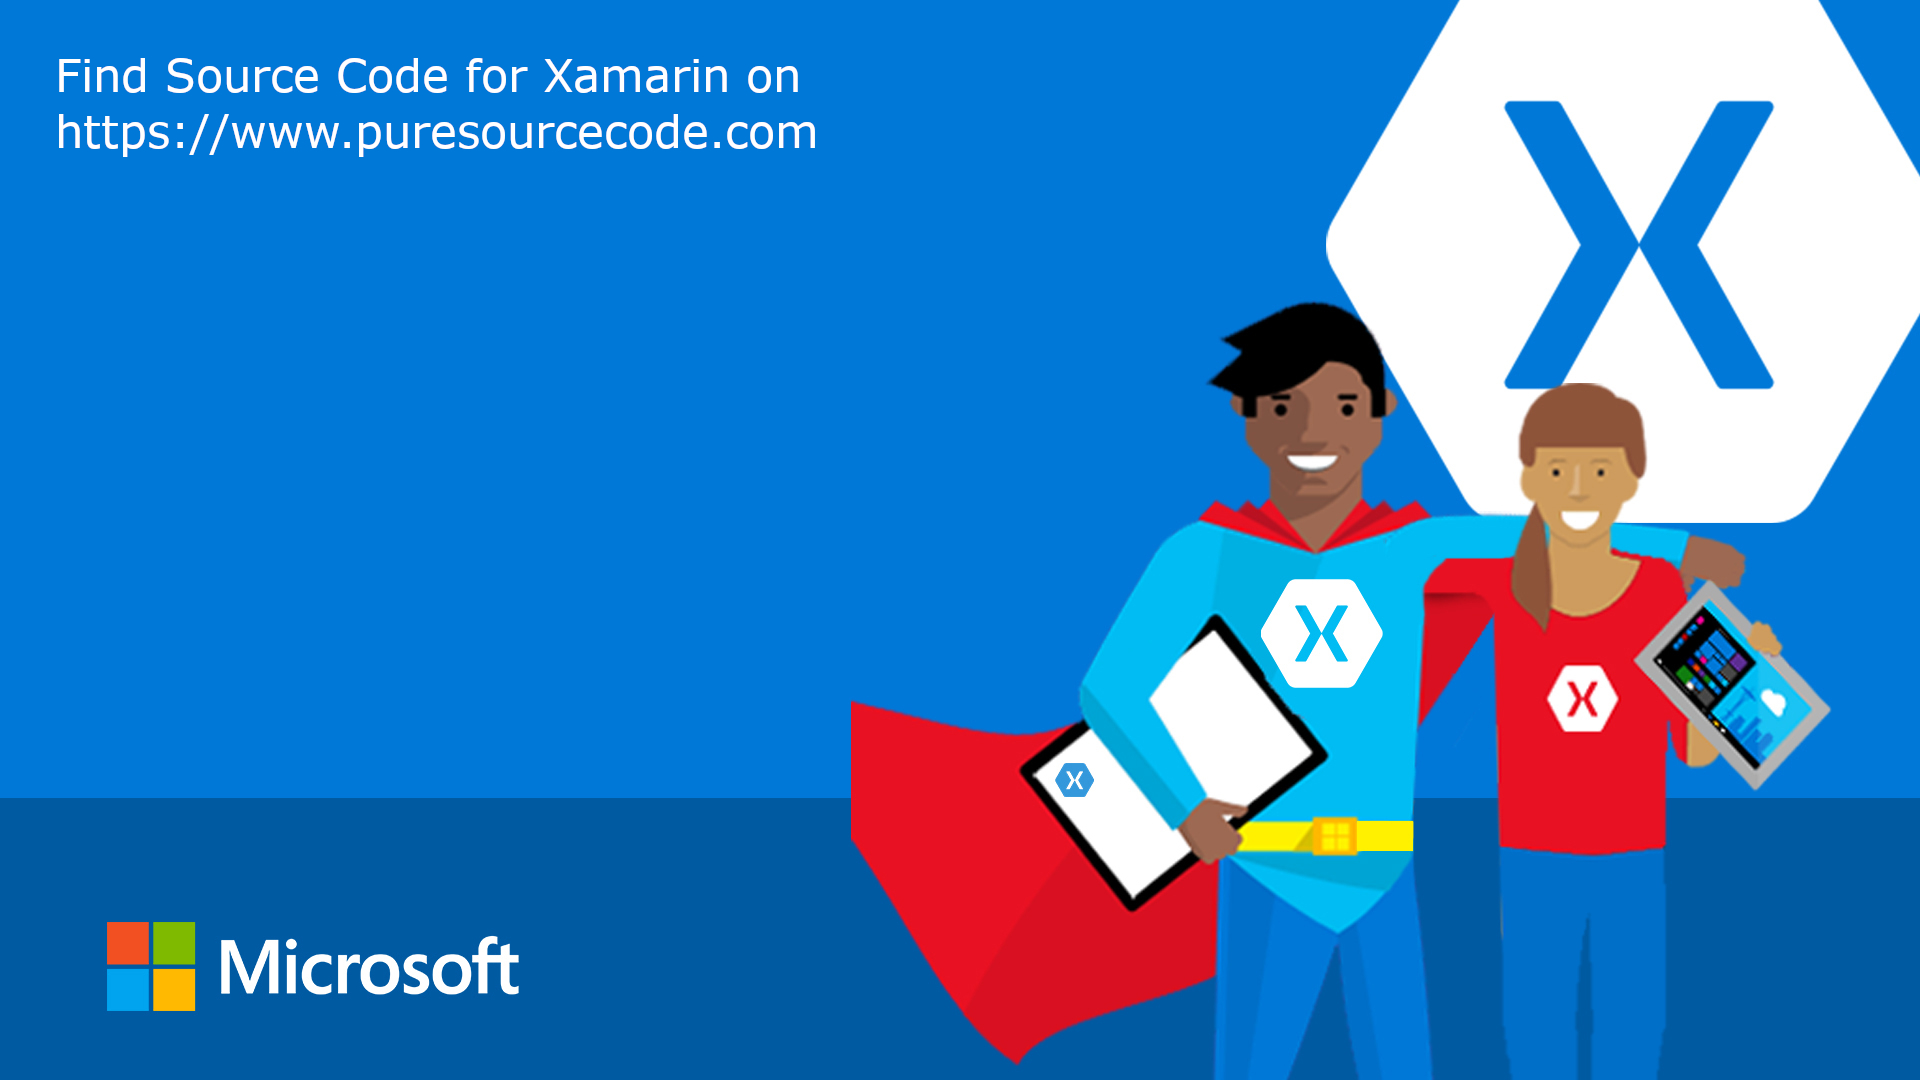 Xamarin forms, UWP Windows 10 App, TitleBar and Status bar customization